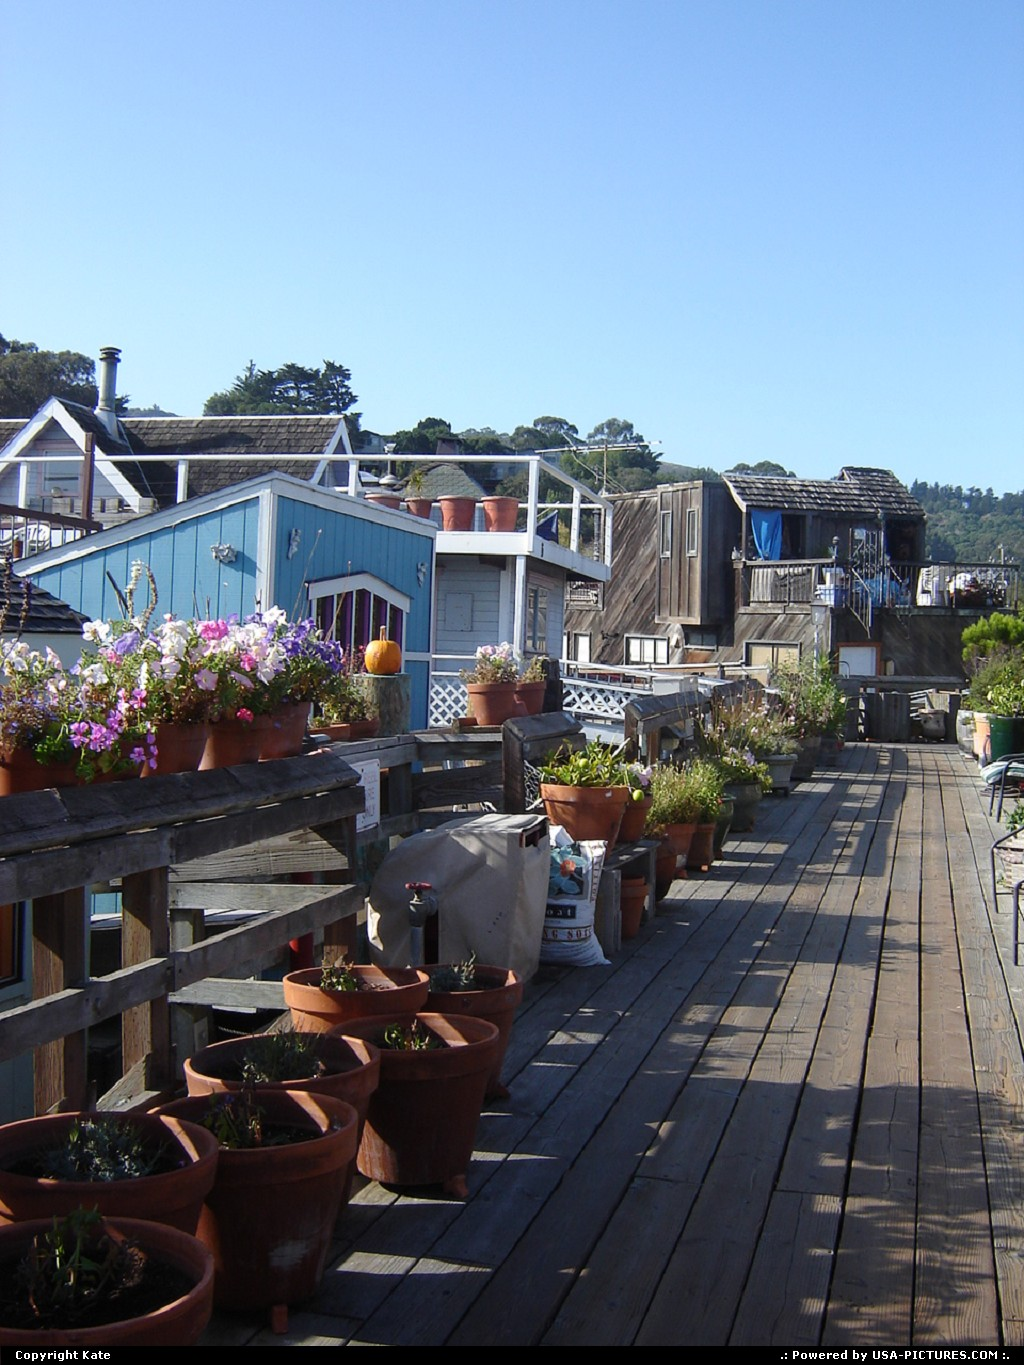 Picture by Kate: Sausalito California